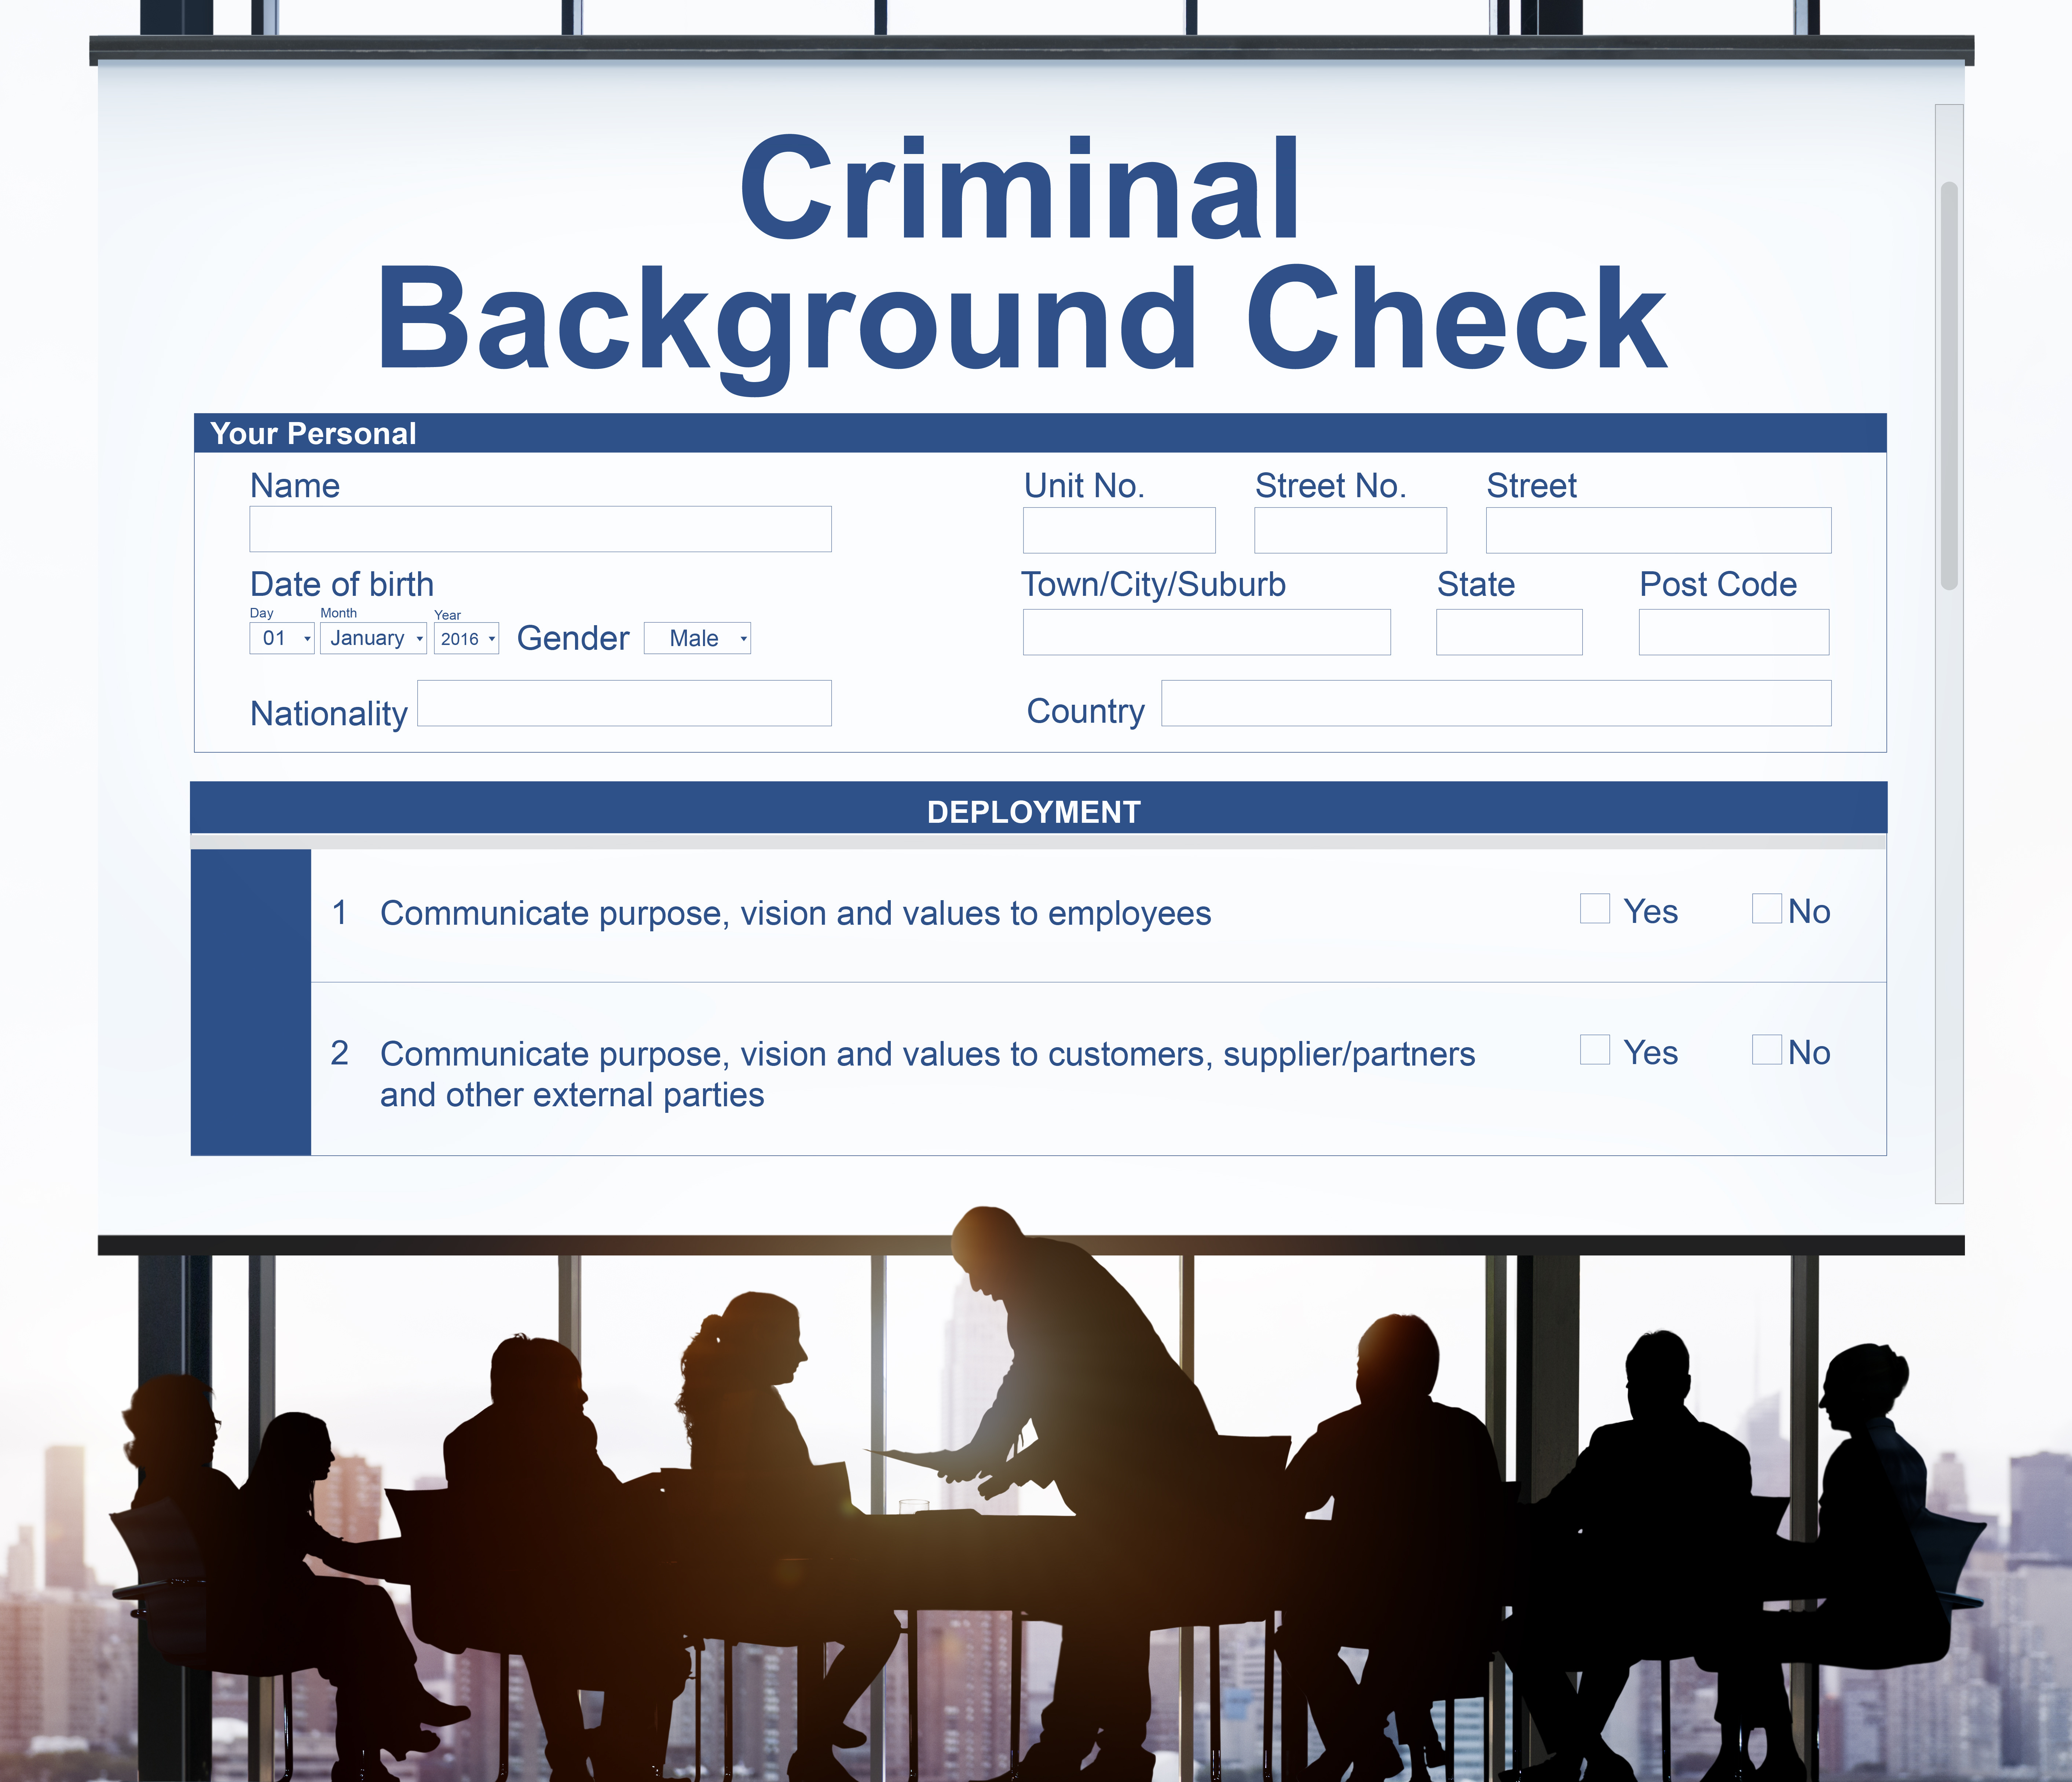 National Criminal Database Search, background checks for employment, pre-employment background checks, criminal background check, background check, background checks